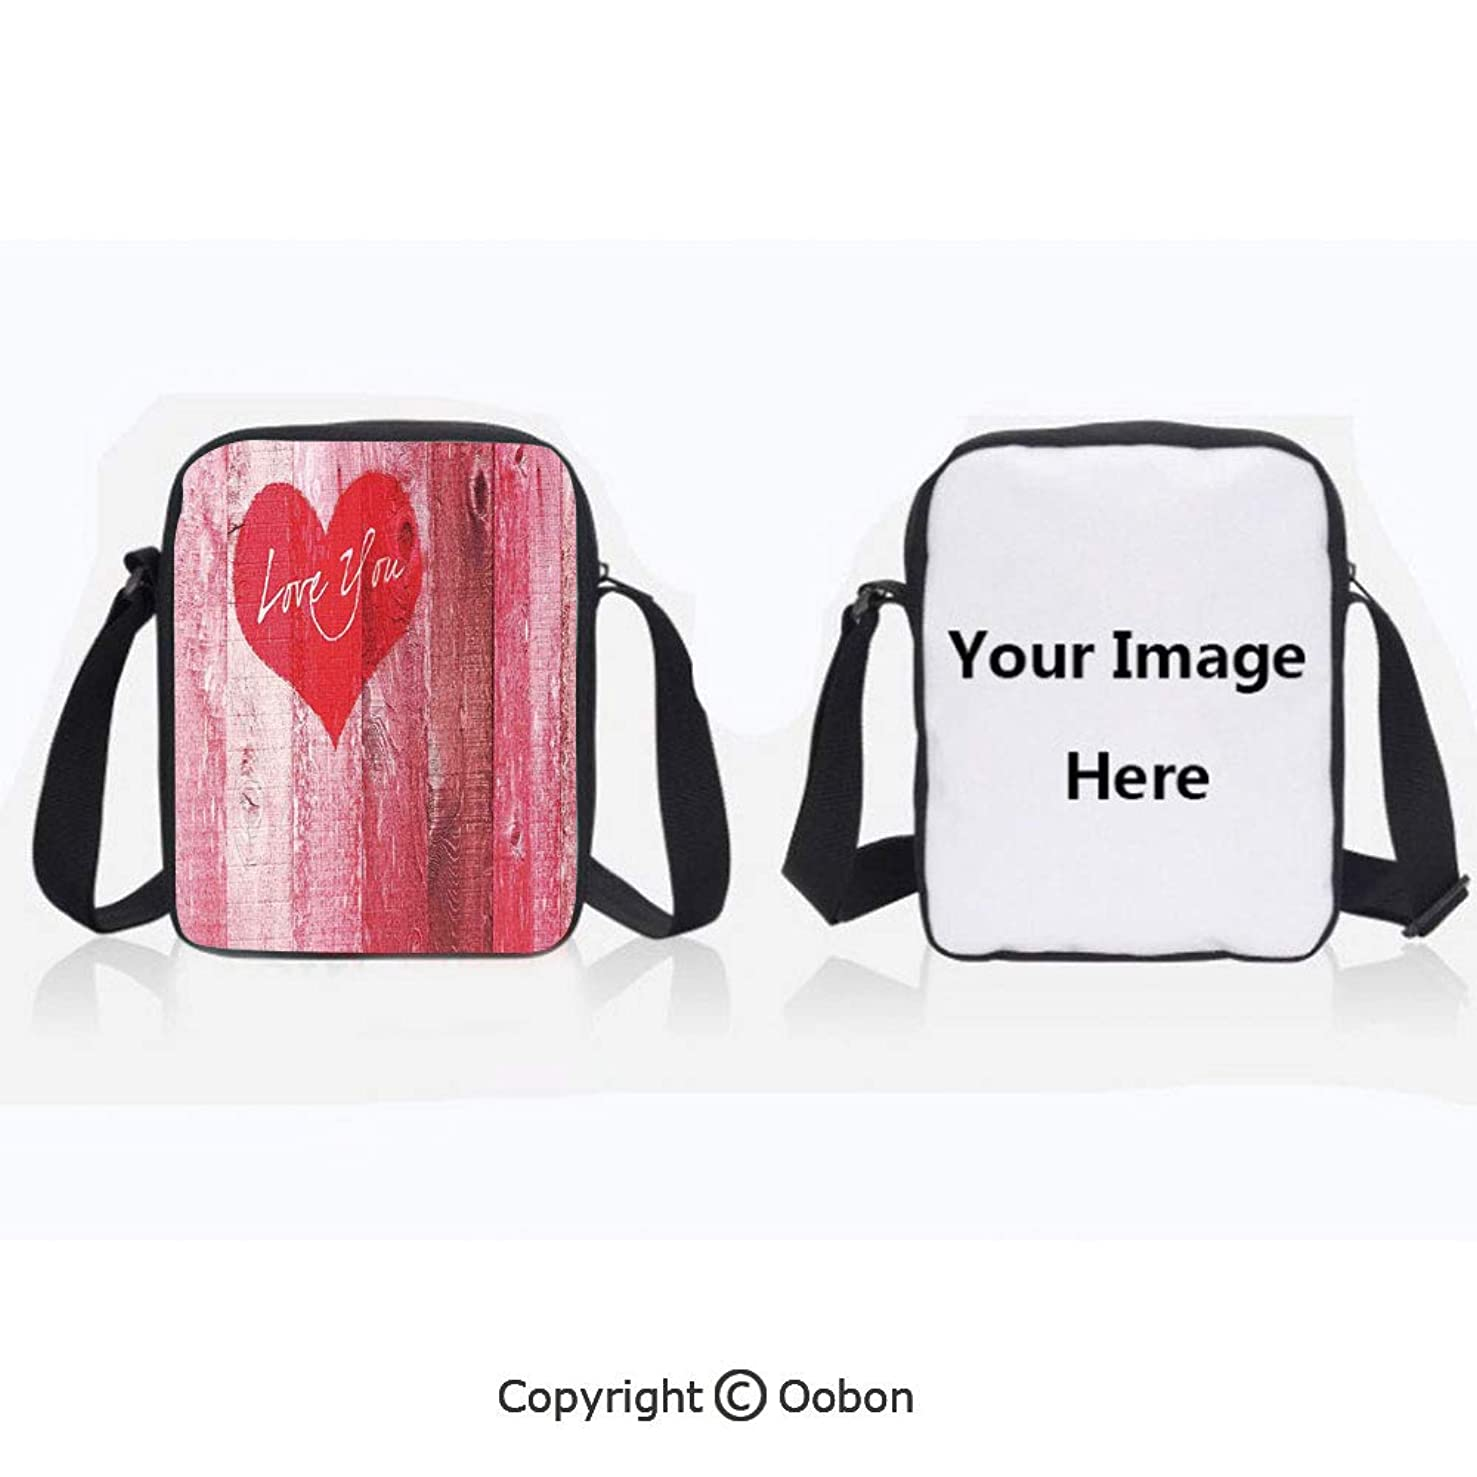 Fashion Everywhere Bag Waterproof Unisex Children Love You Heart on Grunge Style Rustic Wooden Background Valentines Day Retro Artsy Print Red Pink Lightweight Crossbody Polyester Shoulder Bag